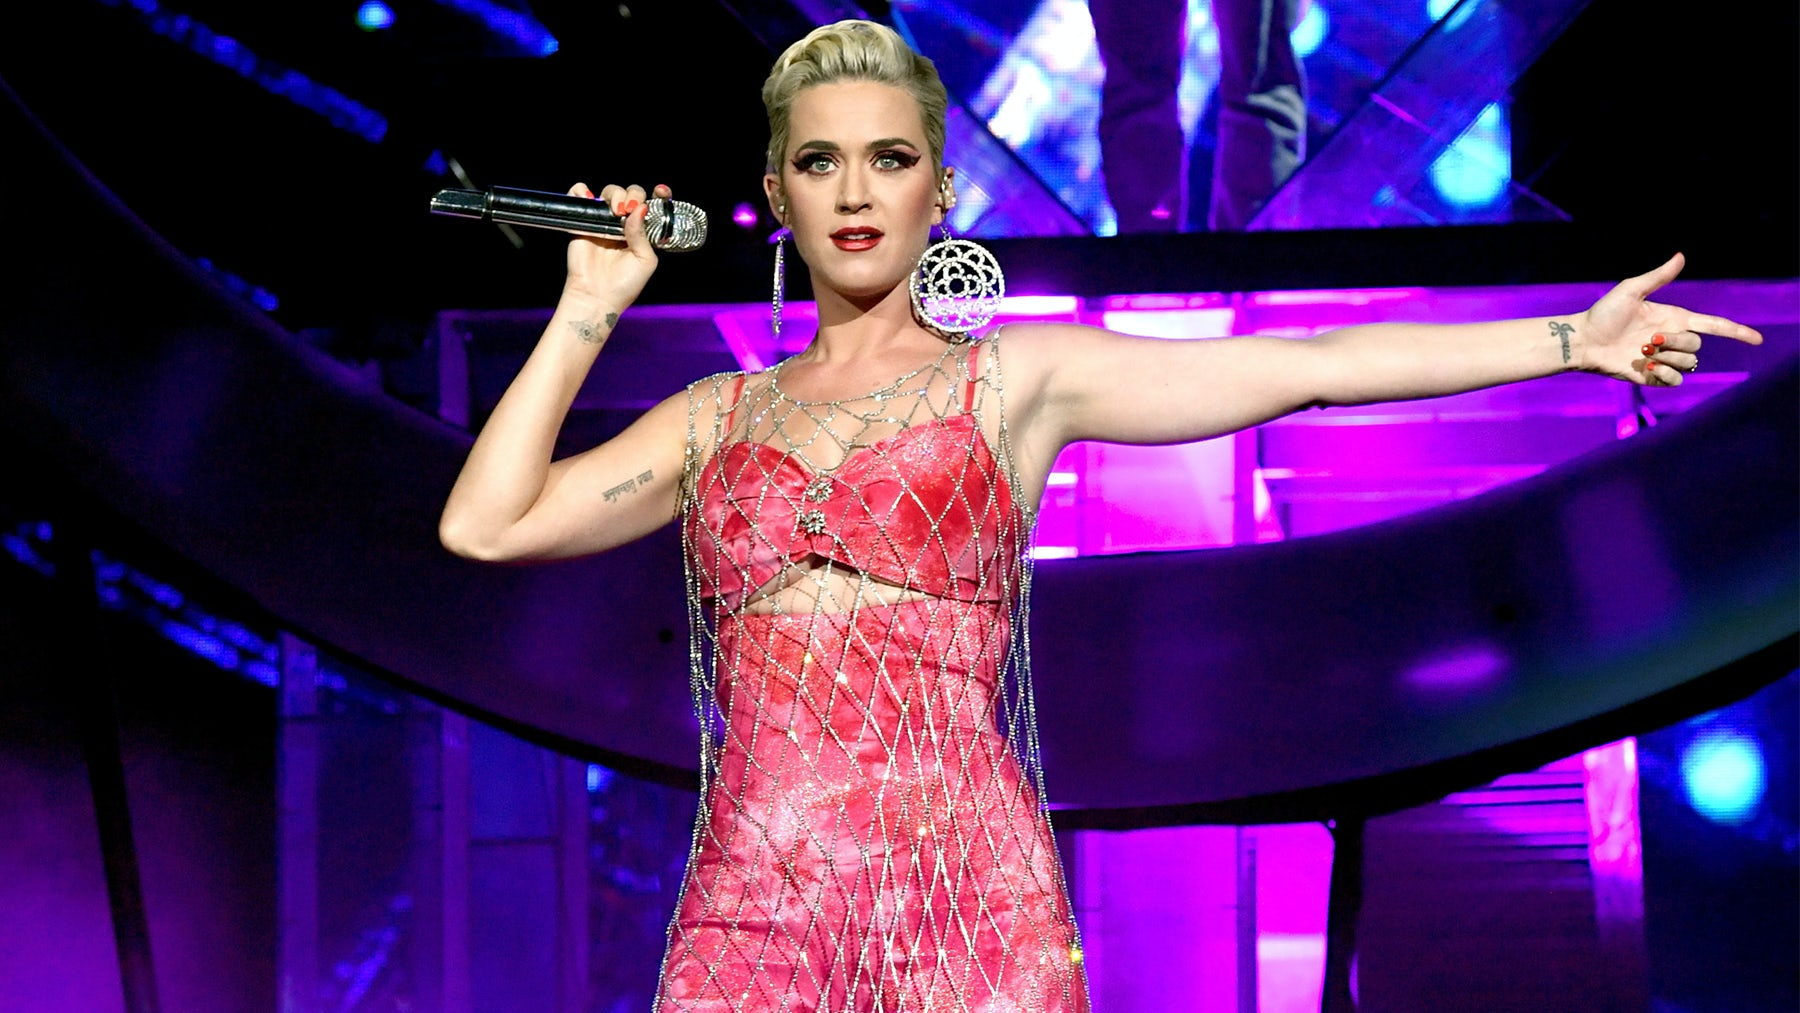 Katy Perry performs at Coachella in Area | Source: Getty Images